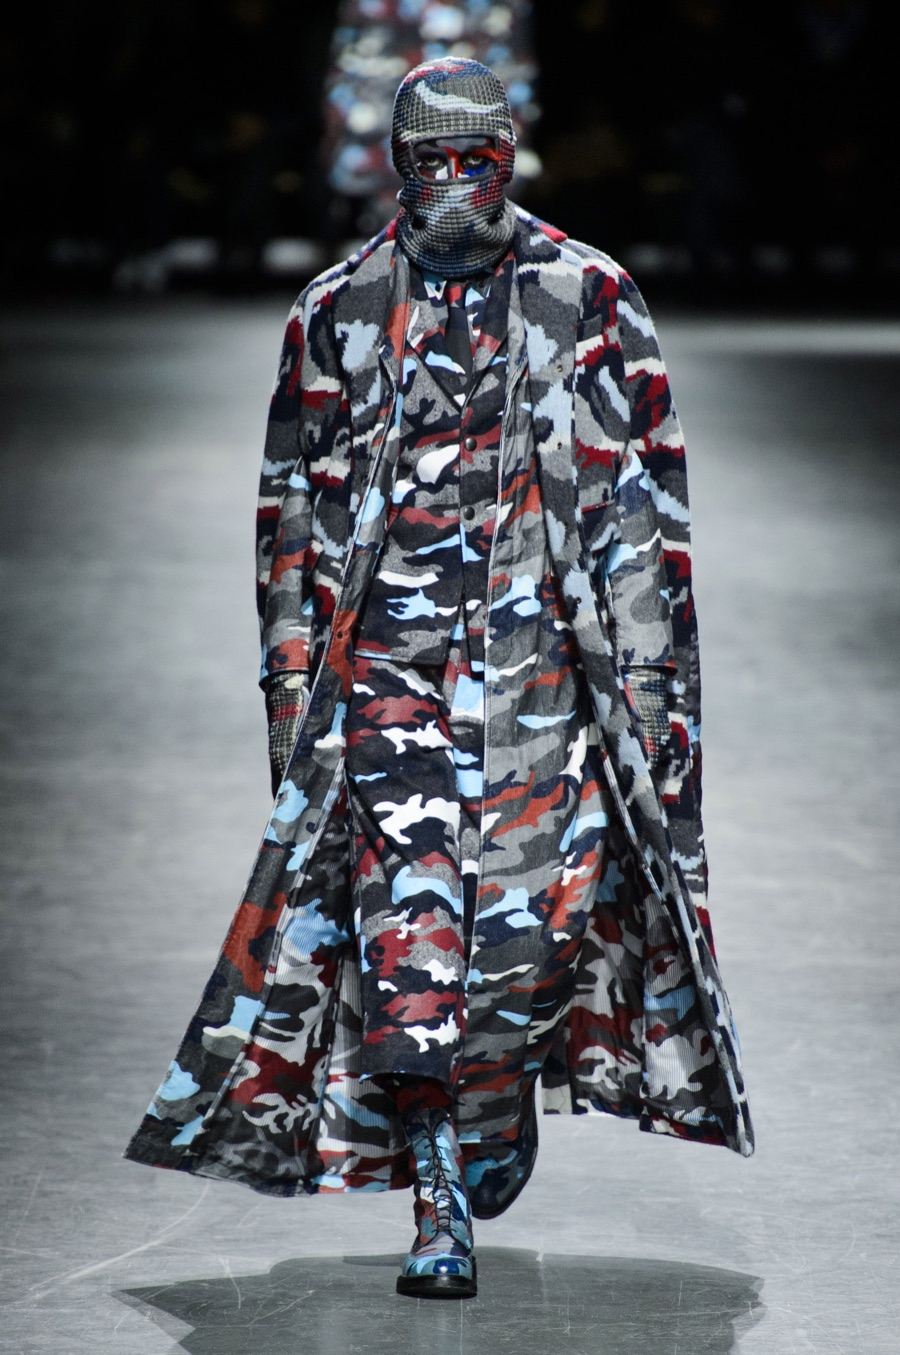 3fda8b14dc41 Moncler Gamme Bleu Does Camouflage for Fall Collection